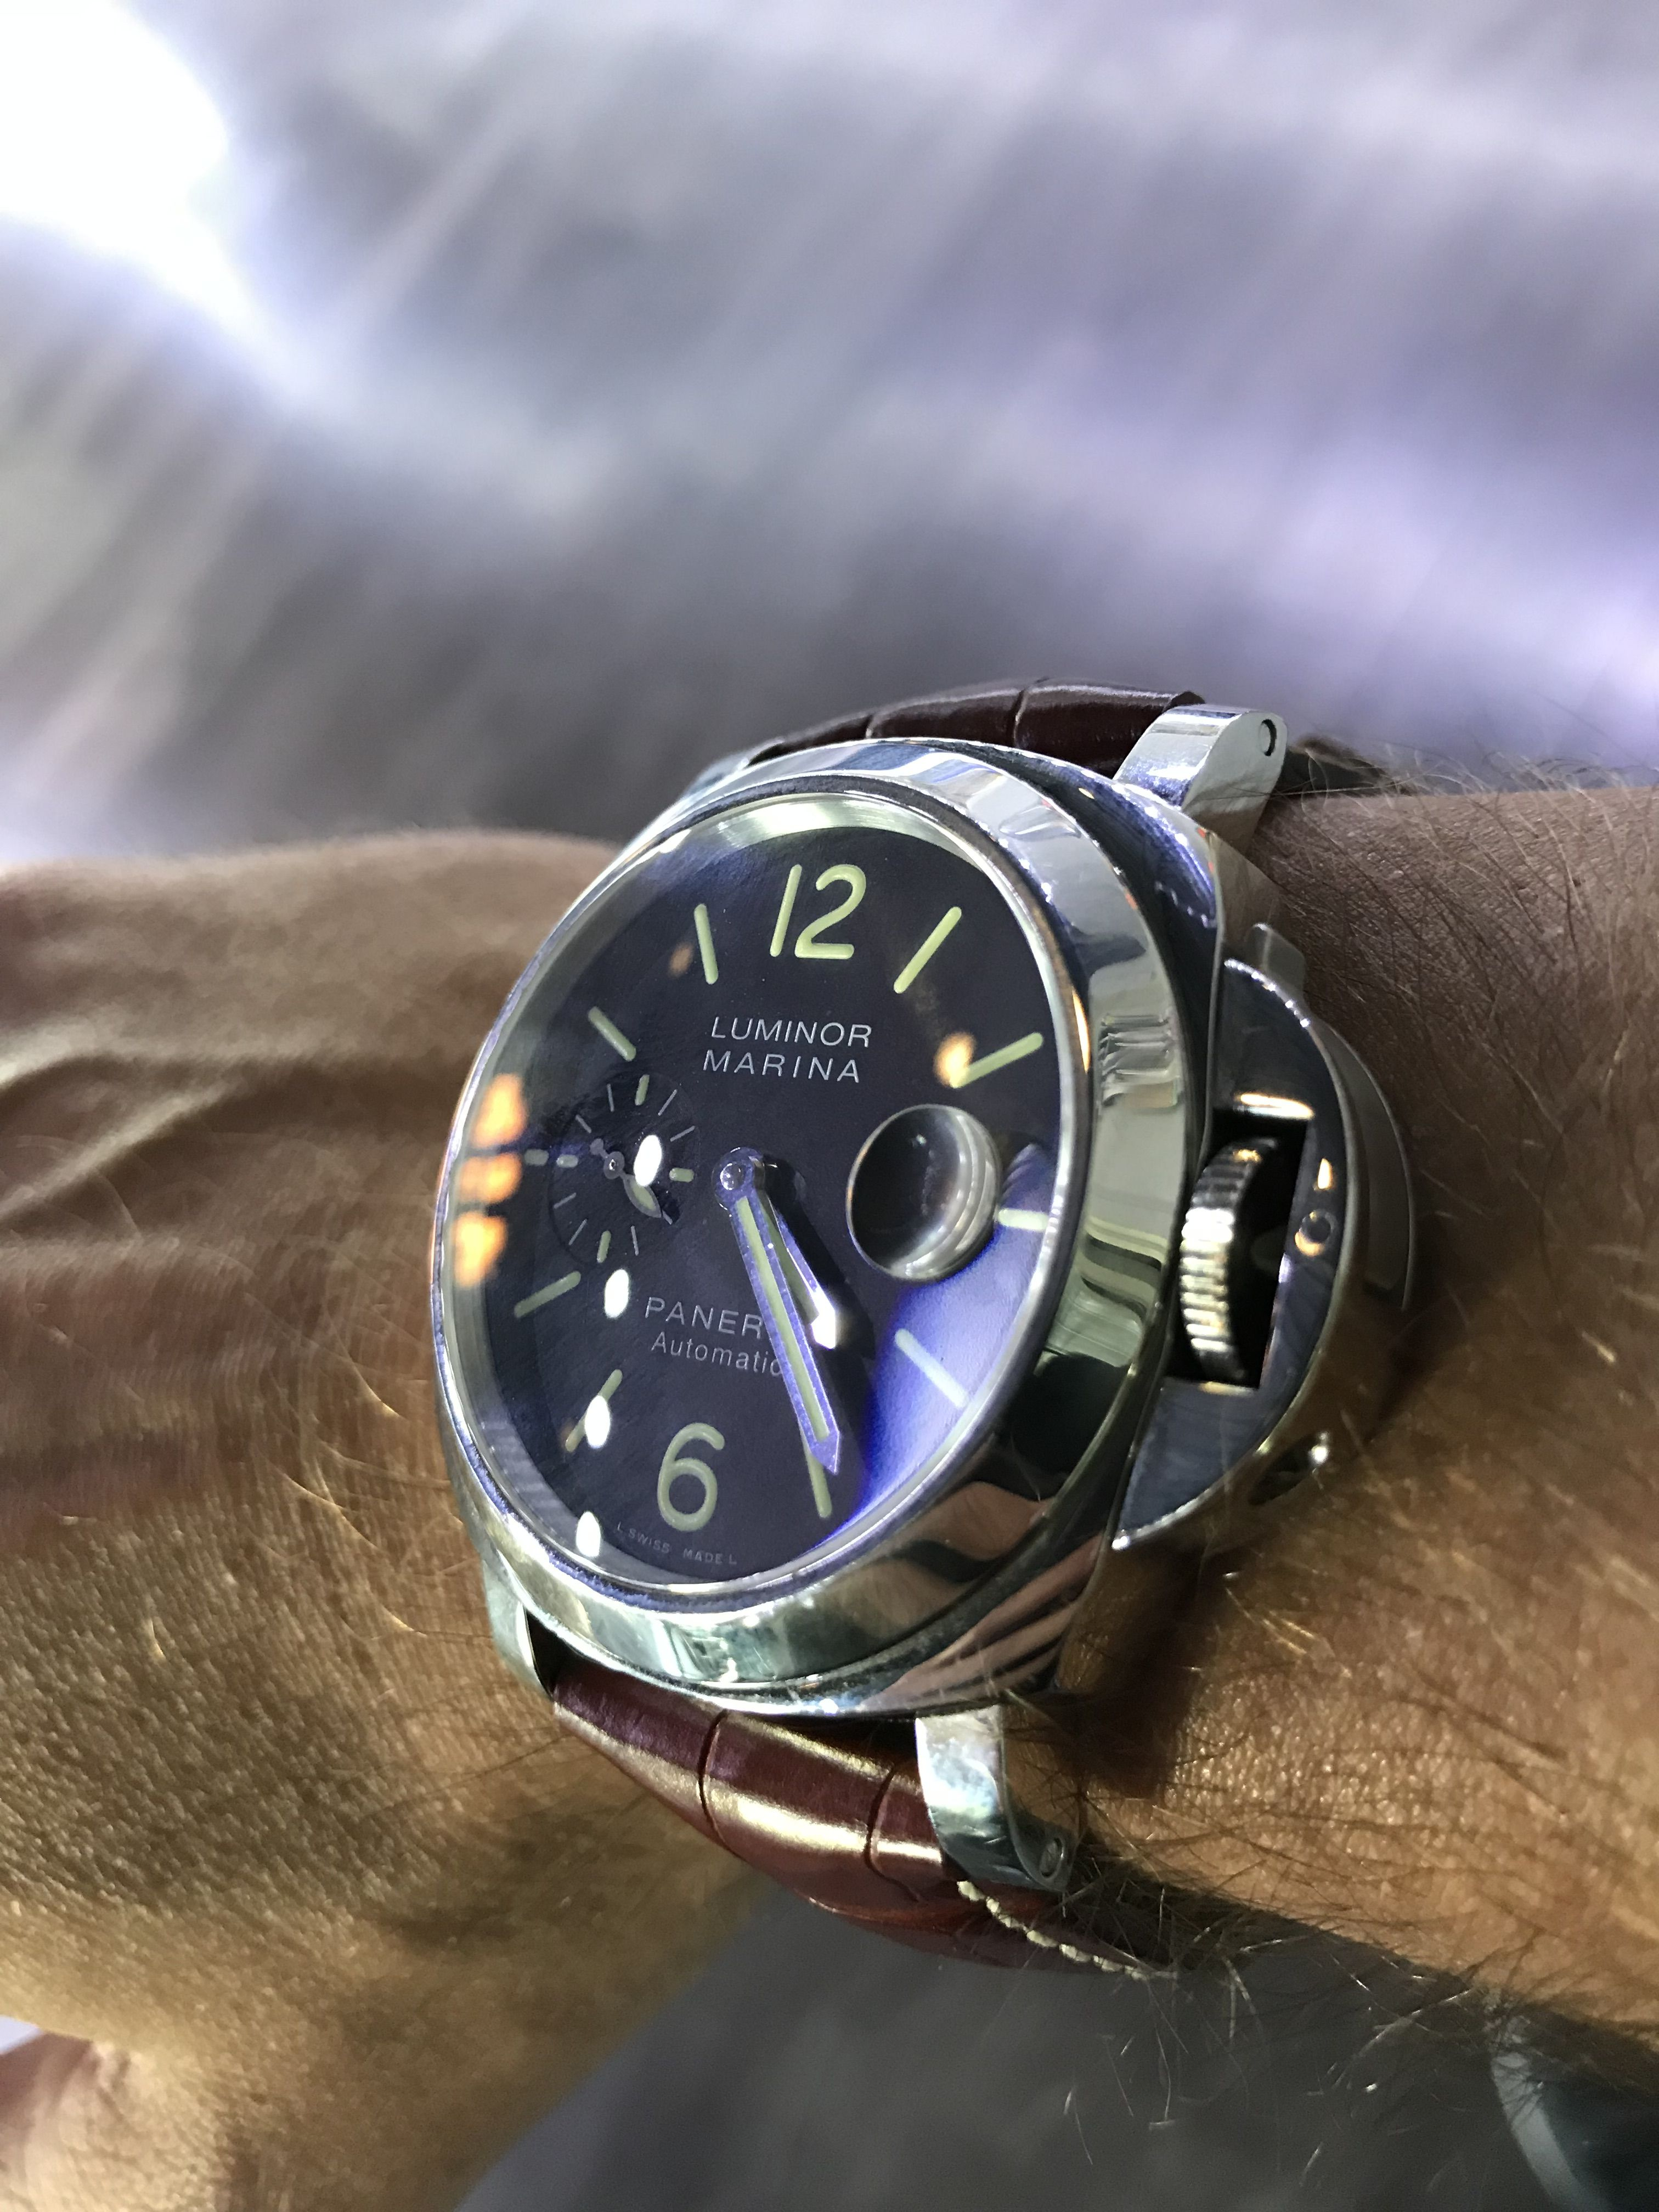 75f2cb761b56d Relógios. First, when it comes to the Panerai Pam 104 Luminor Marina we  need to look